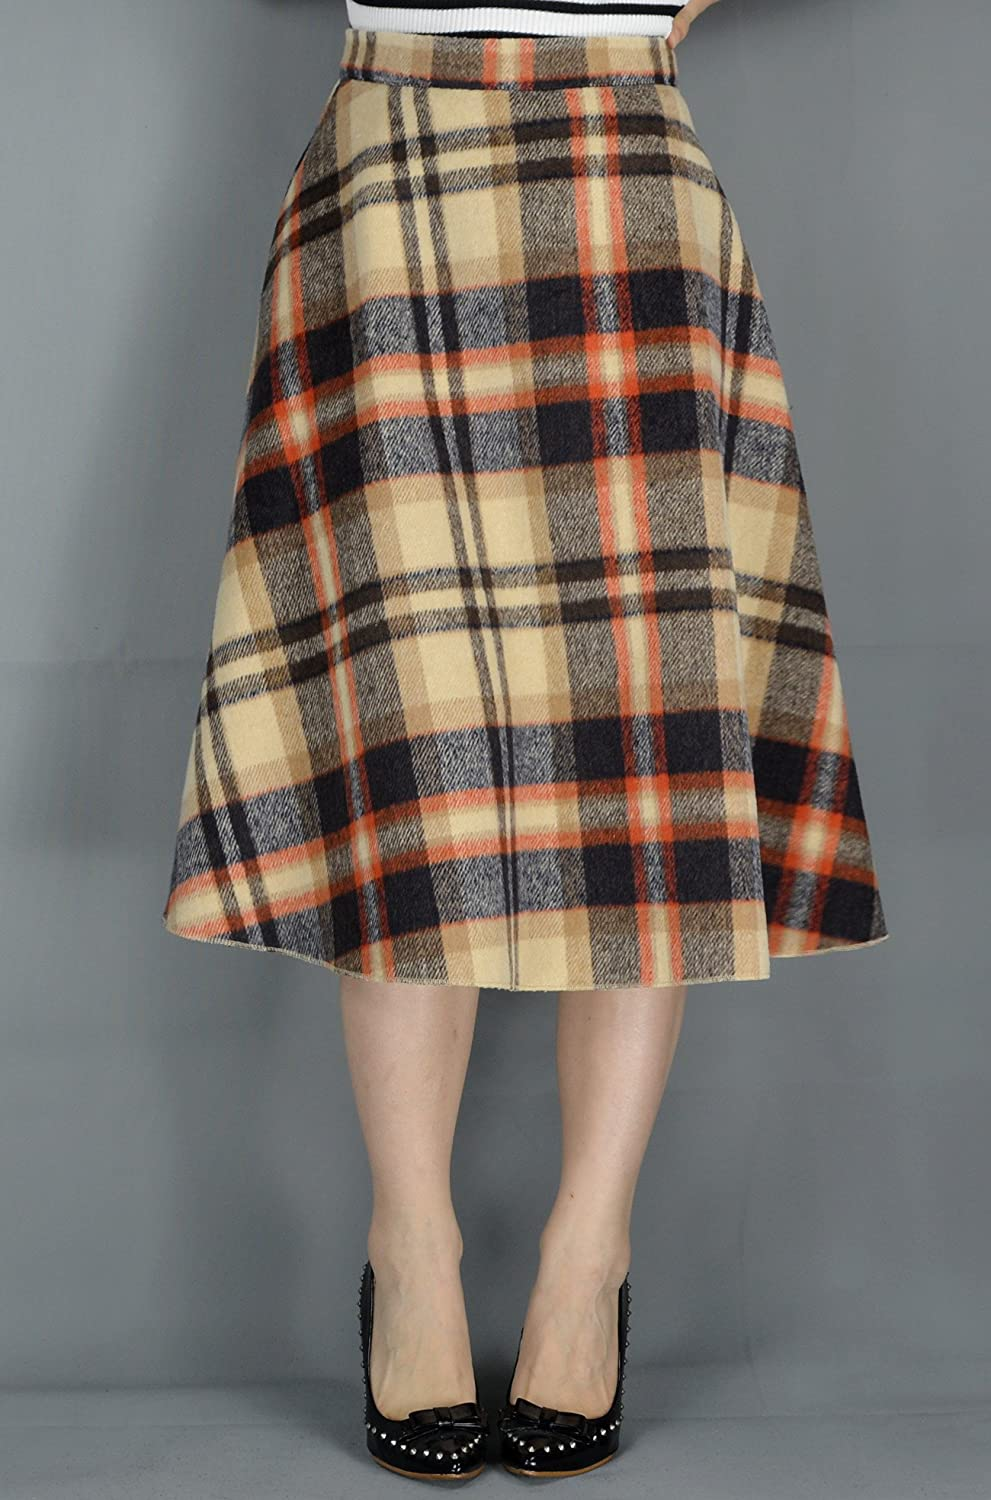 1940s Style Skirts- Vintage High Waisted Skirts YSJERA Womens Wool Midi Skirt A-Line Pleated Vintage Plaid Winter Swing Skirts $25.99 AT vintagedancer.com